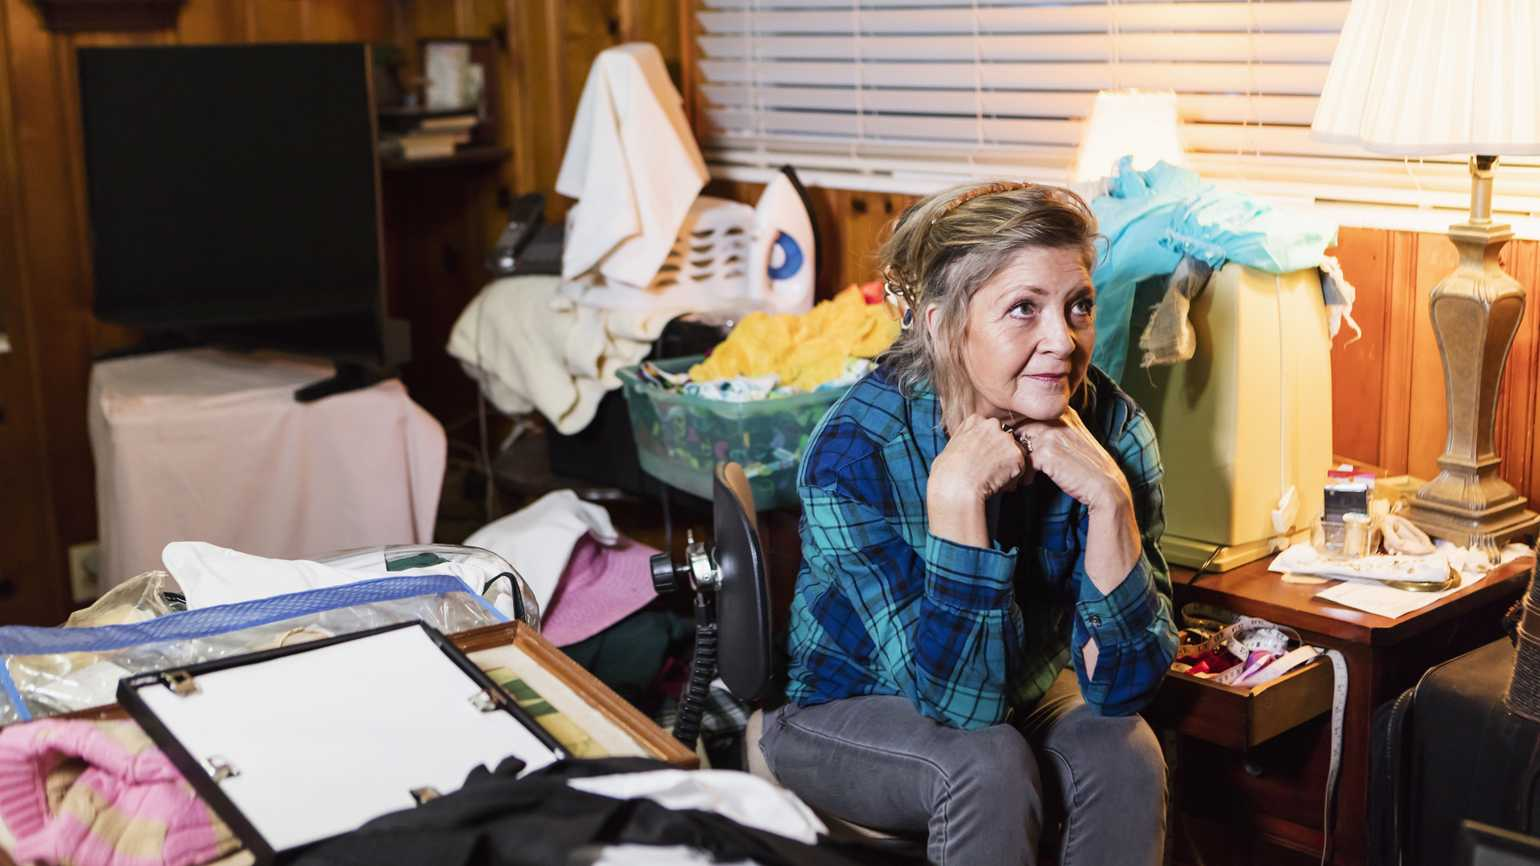 Understanding Why Someone with Alzheimer's Rummages or Hides Things